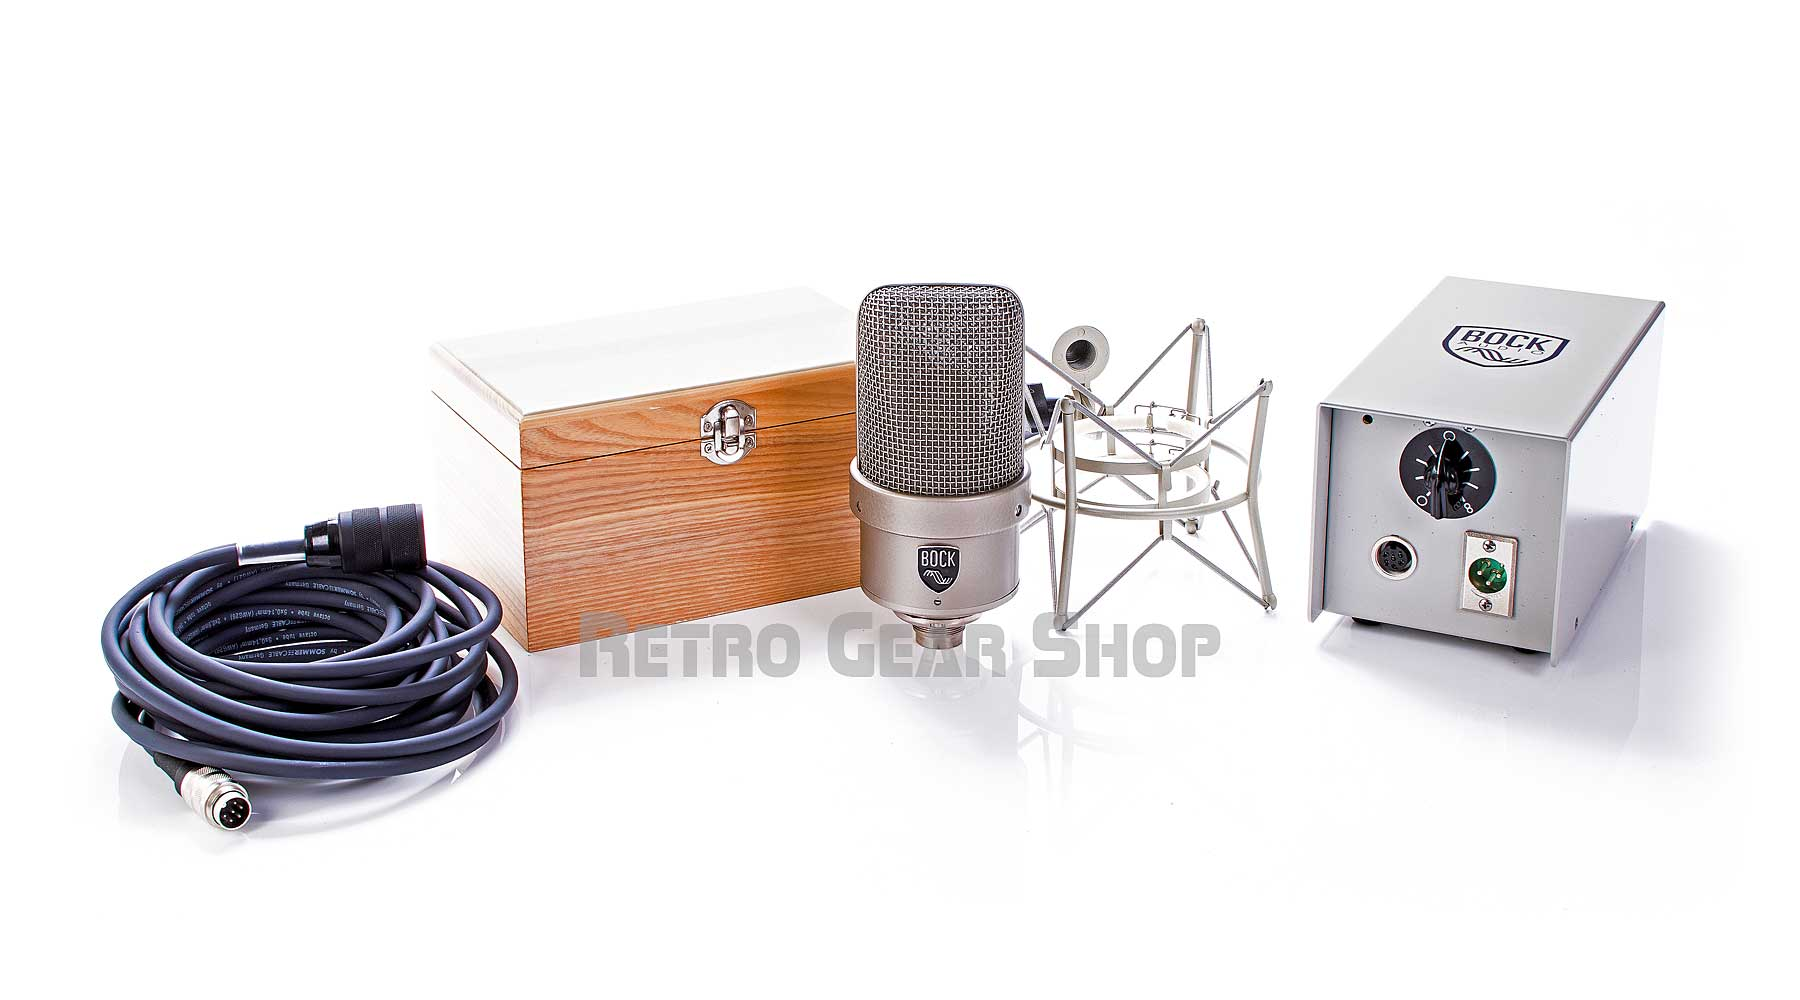 Bock Audio 49 Set